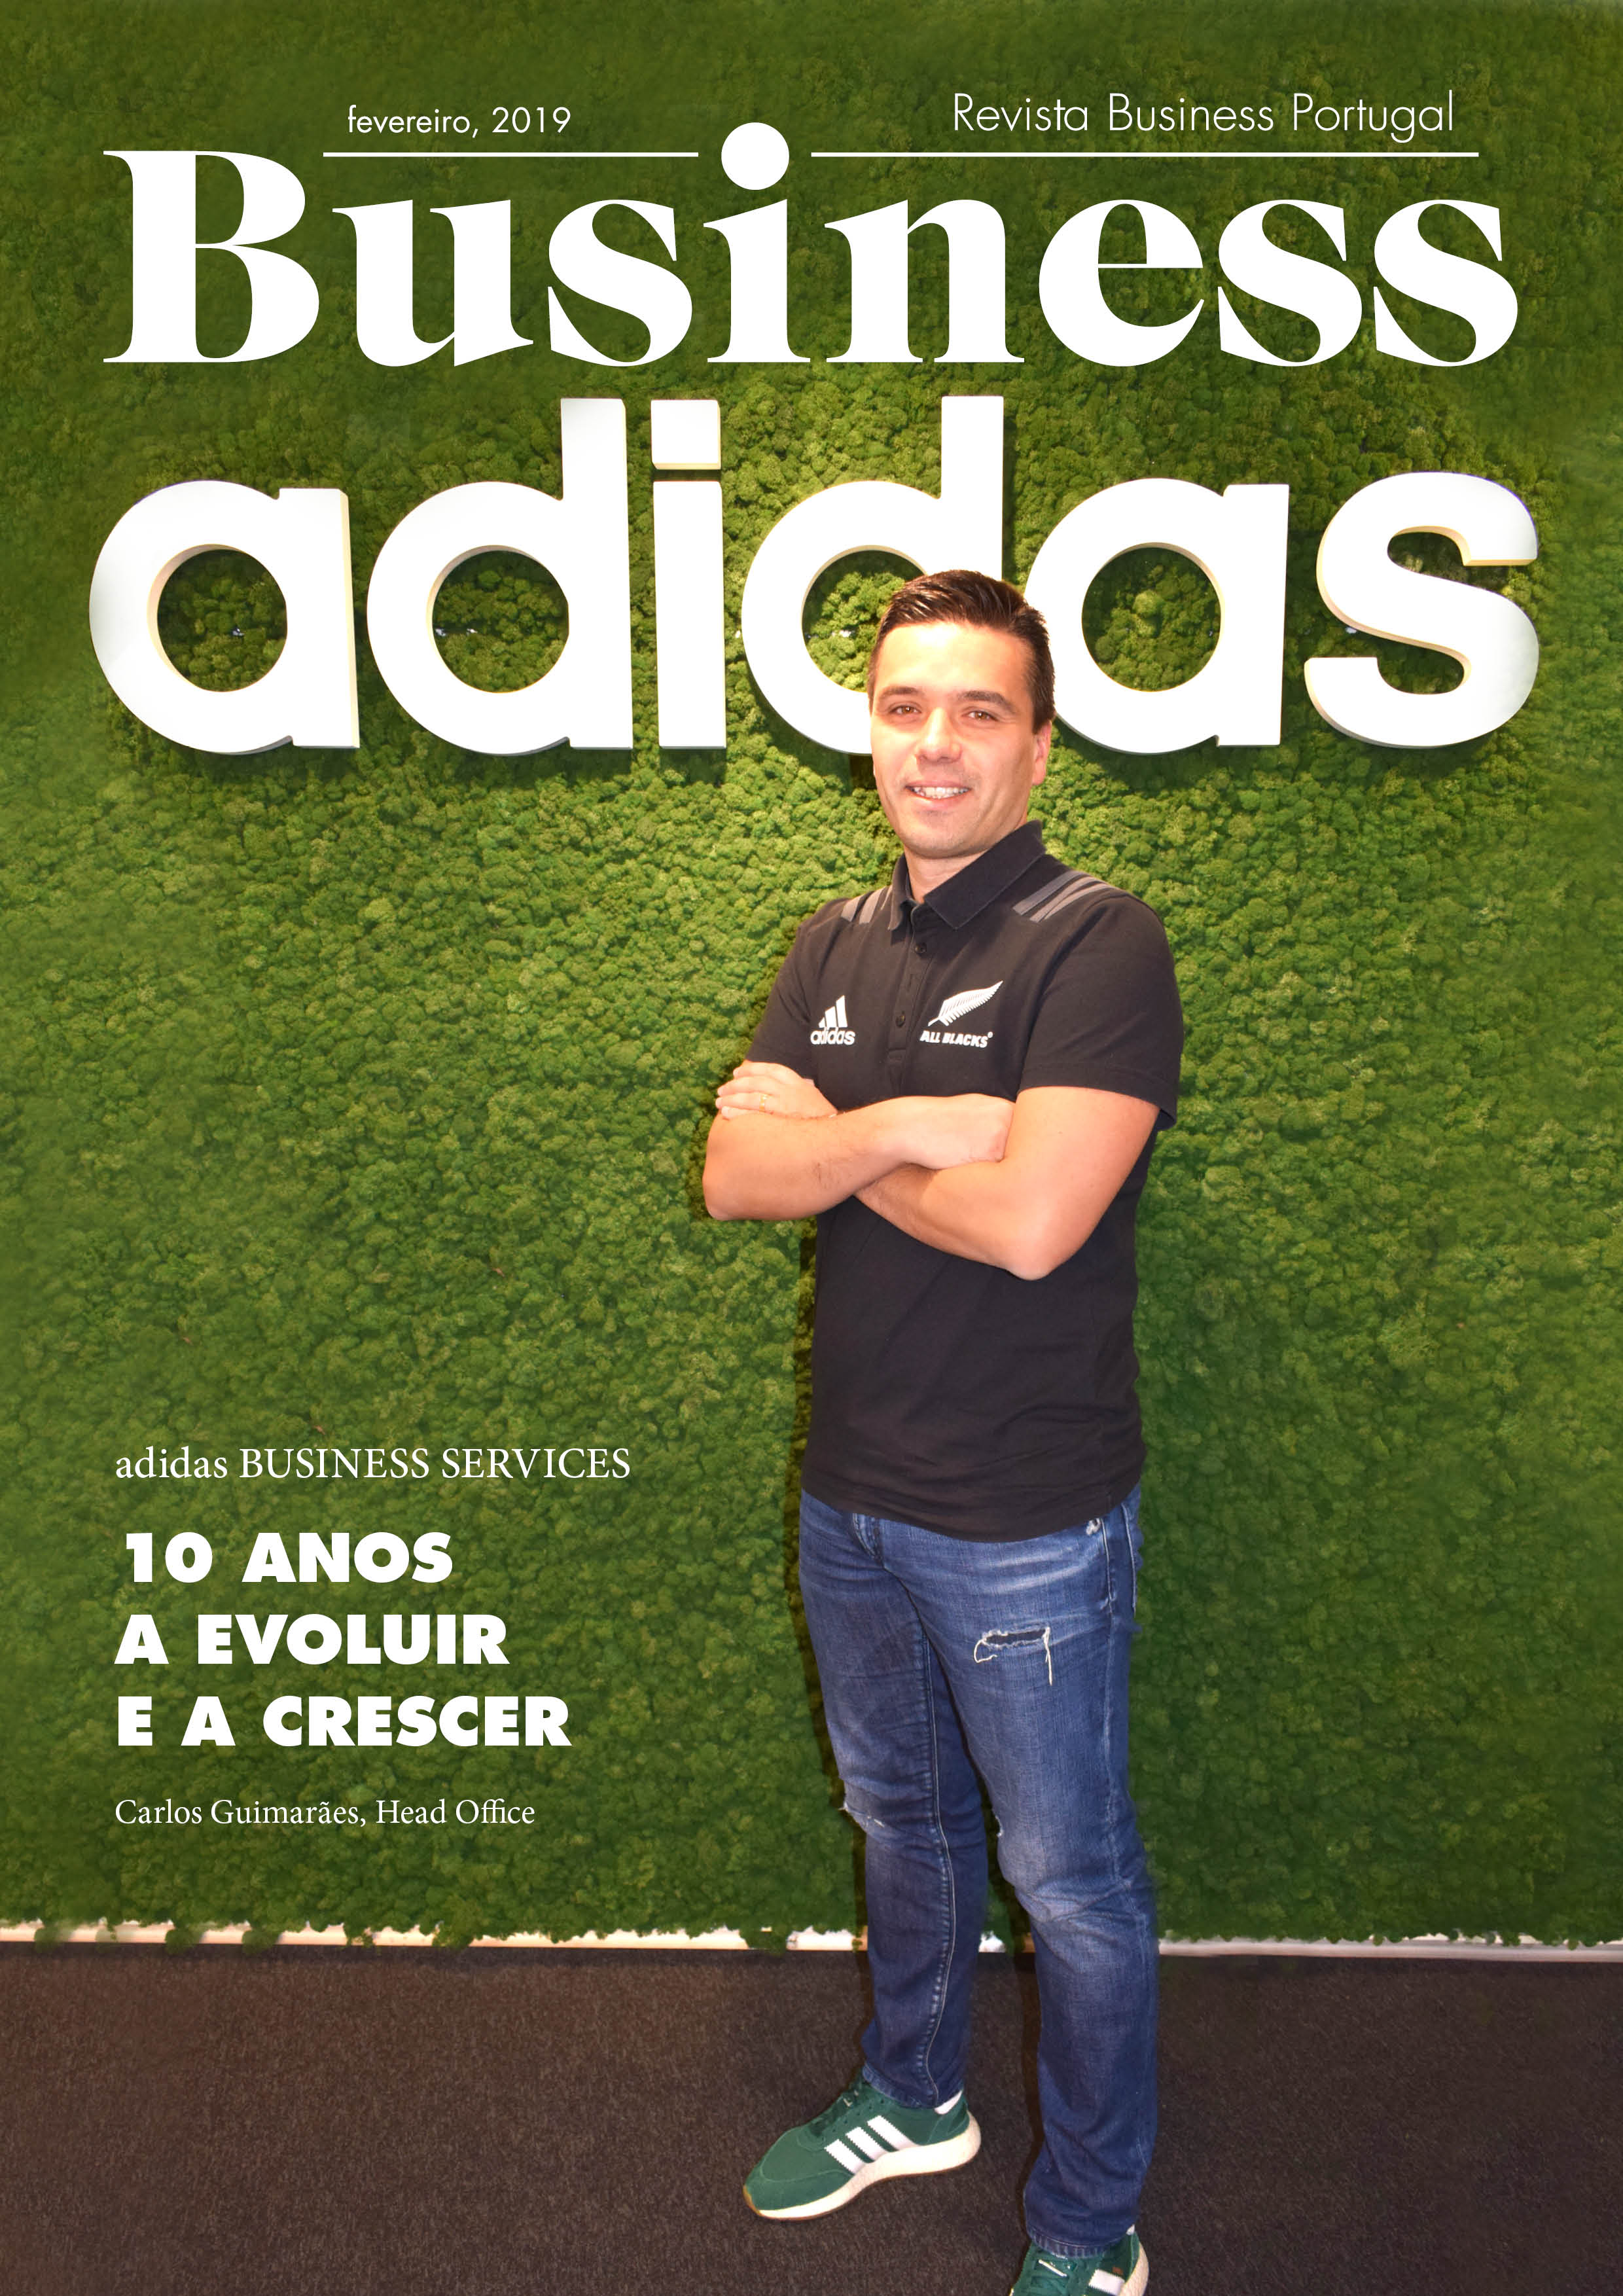 adidas Business Services